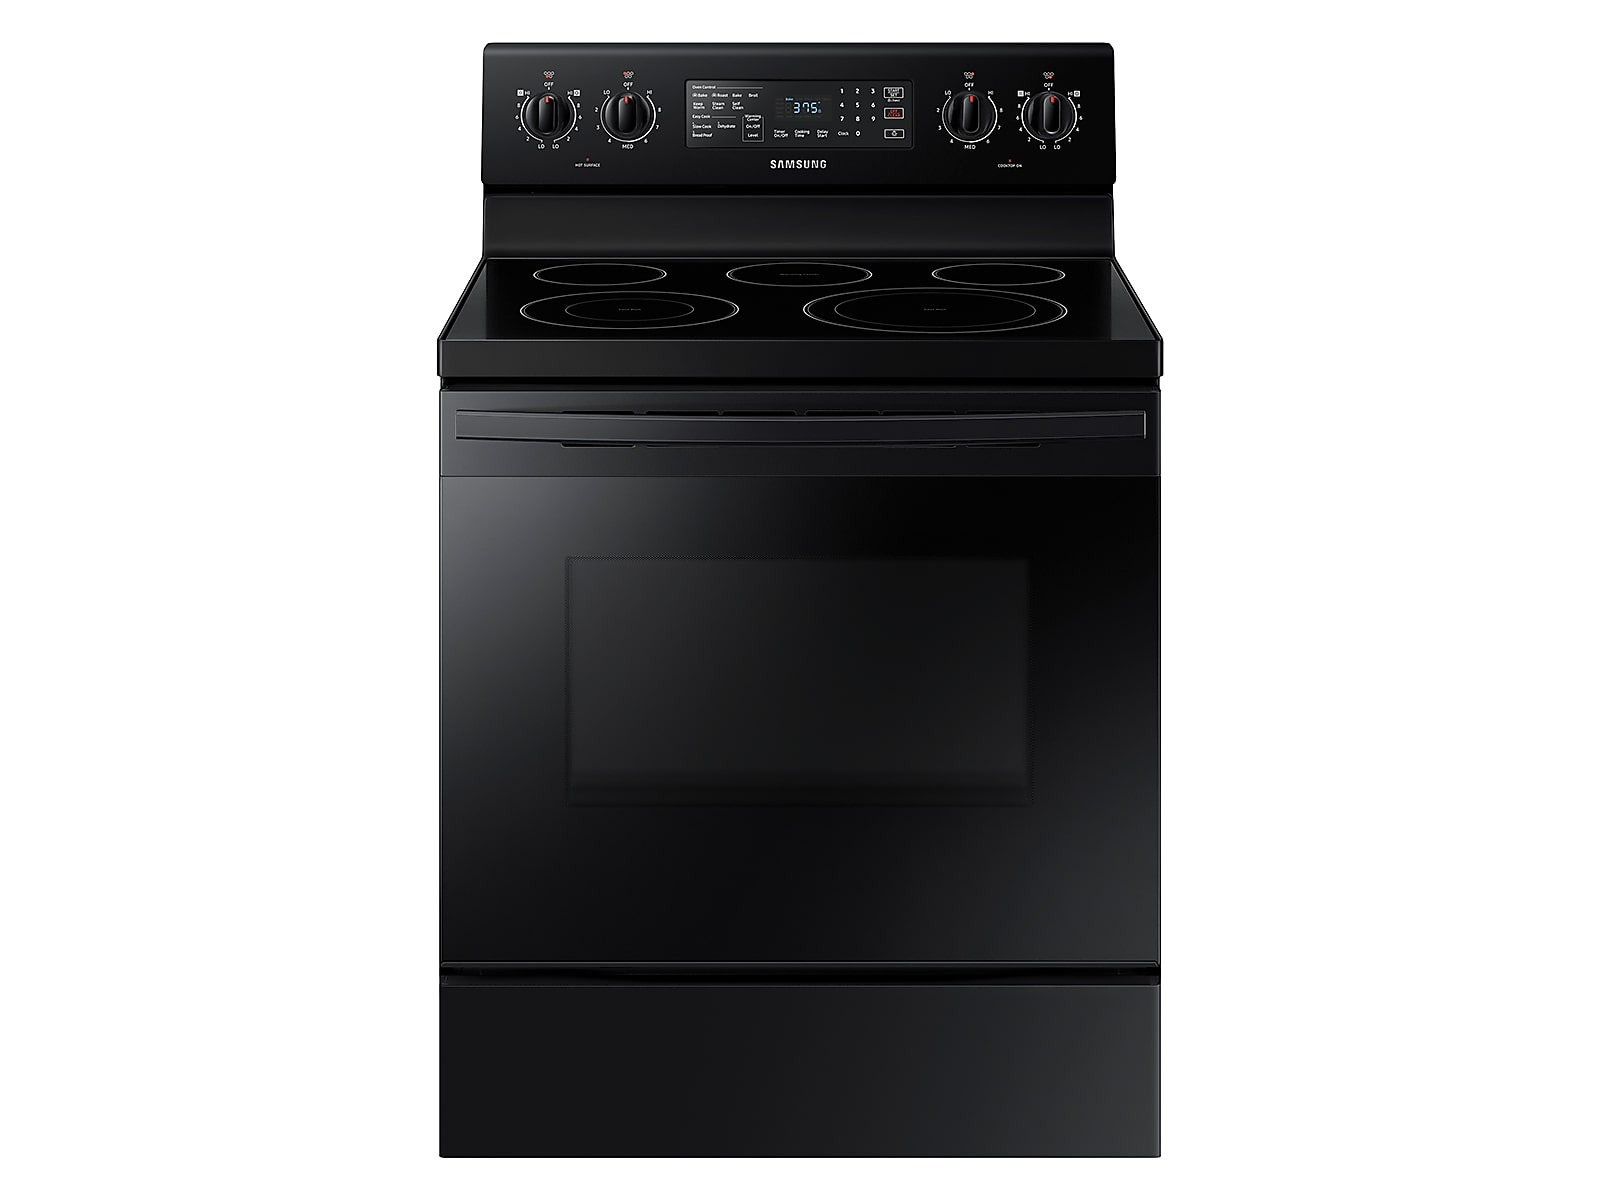 Samsung 5.9 cu. ft. Freestanding Electric Range with Convection in Black(NE59T4321SB/AA)